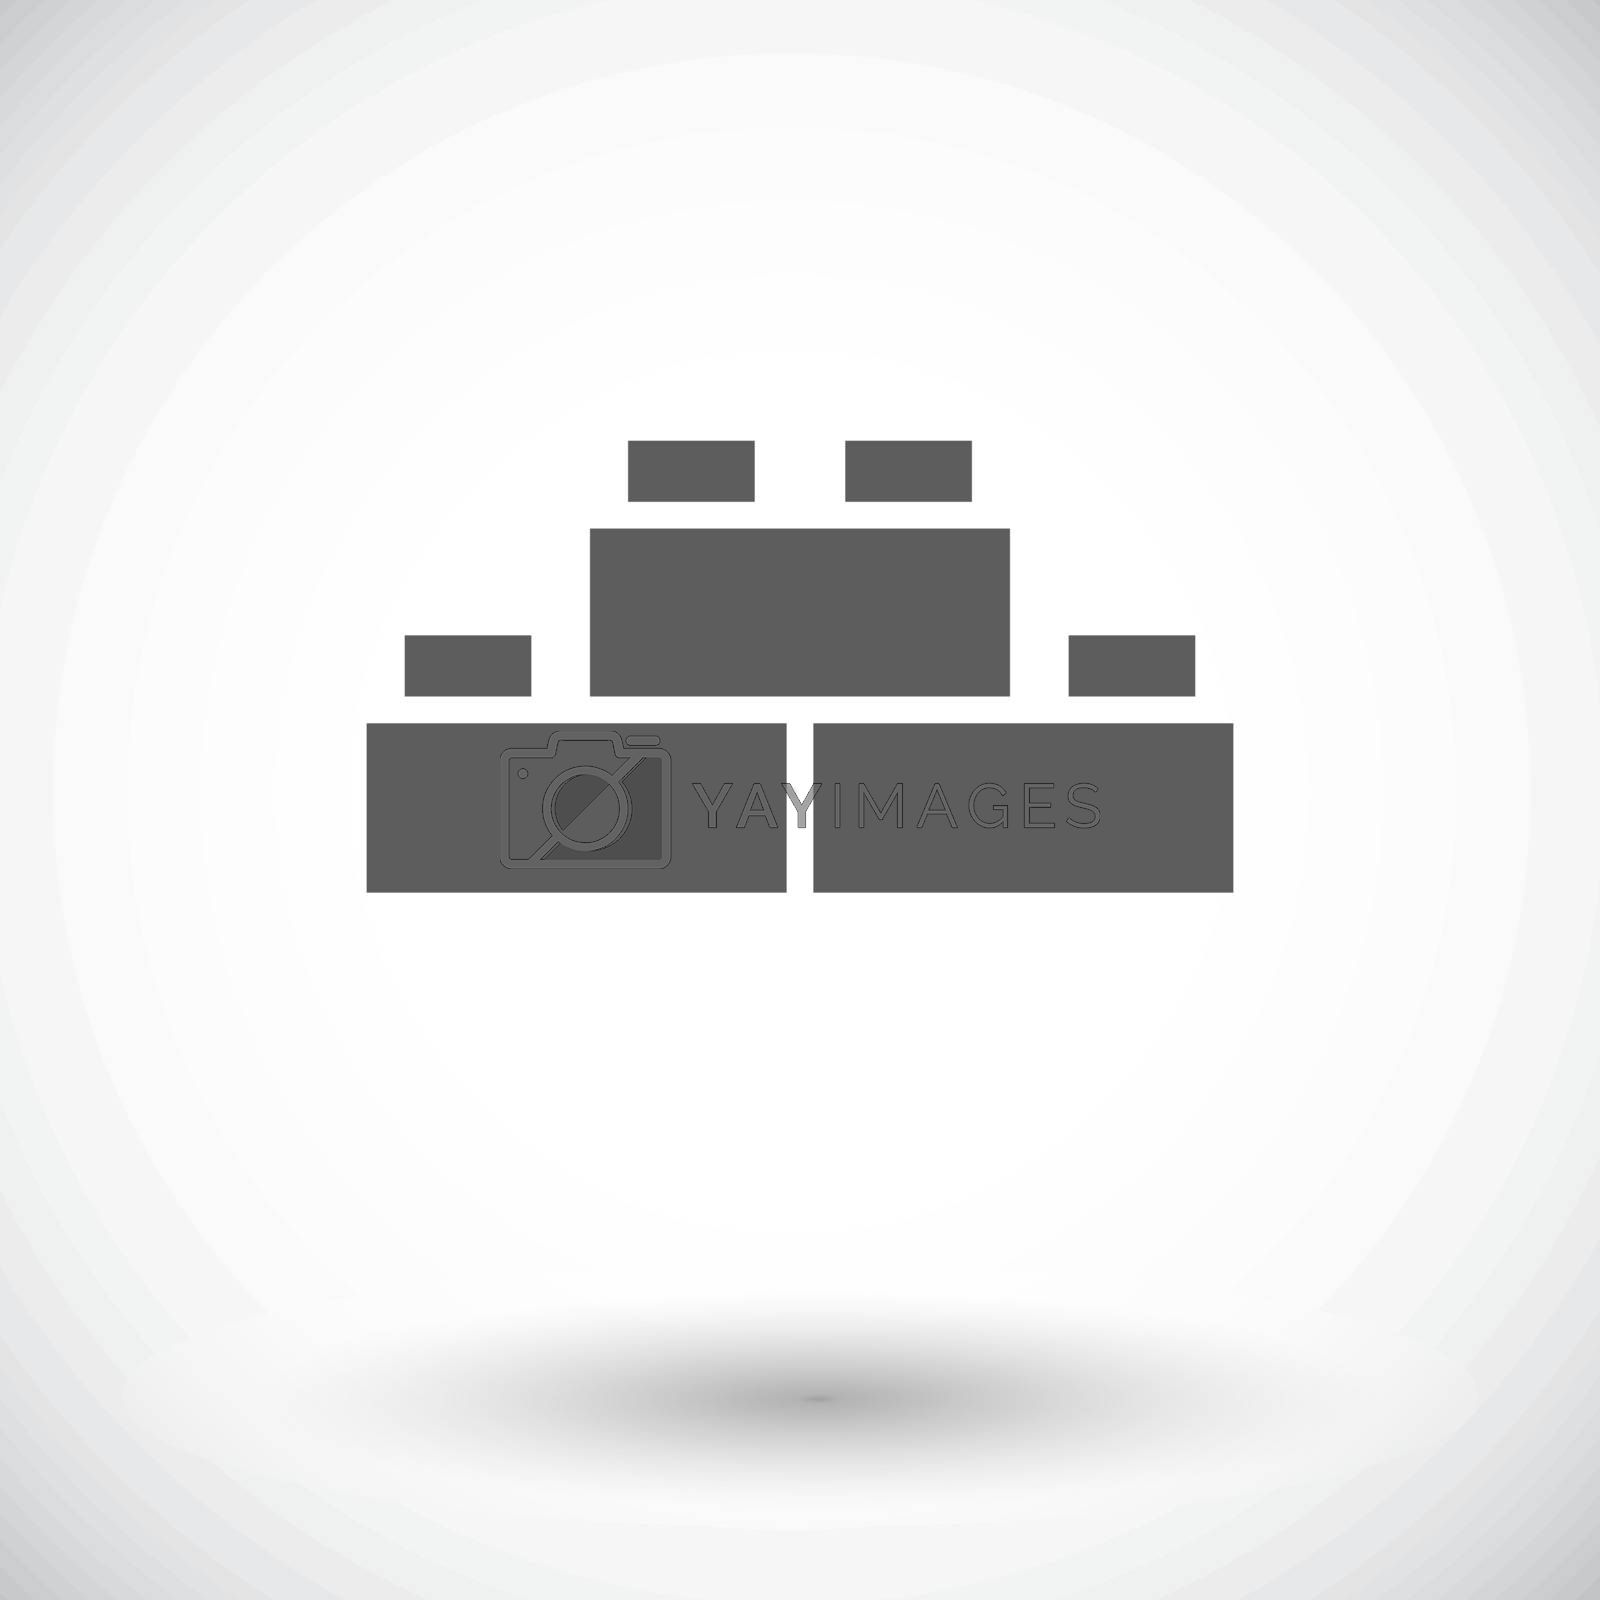 Building block icon. Flat vector related icon for web and mobile applications. It can be used as - logo, pictogram, icon, infographic element. Vector Illustration.